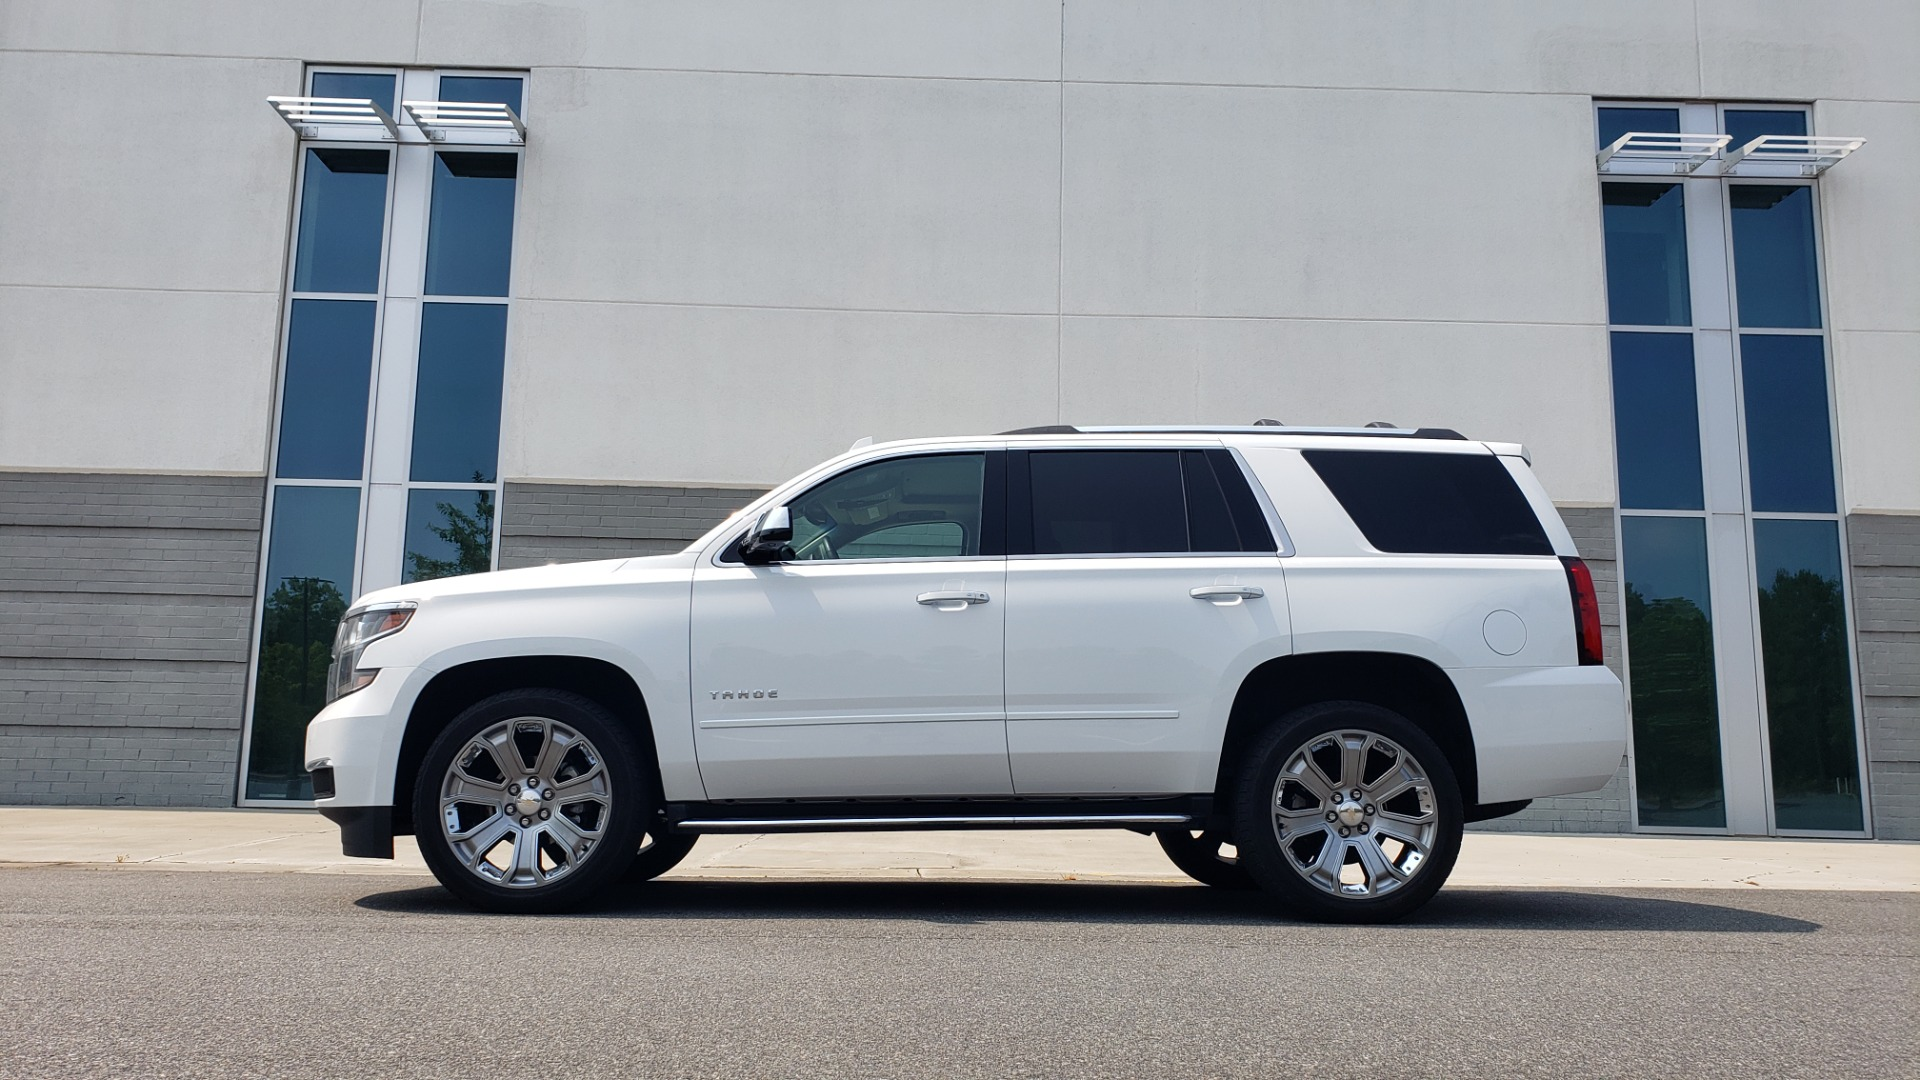 Used 2018 Chevrolet TAHOE PREMIER 4WD / NAV / SUNROOF / BOSE / 3-ROW / HUD / REARVIEW for sale $63,995 at Formula Imports in Charlotte NC 28227 6